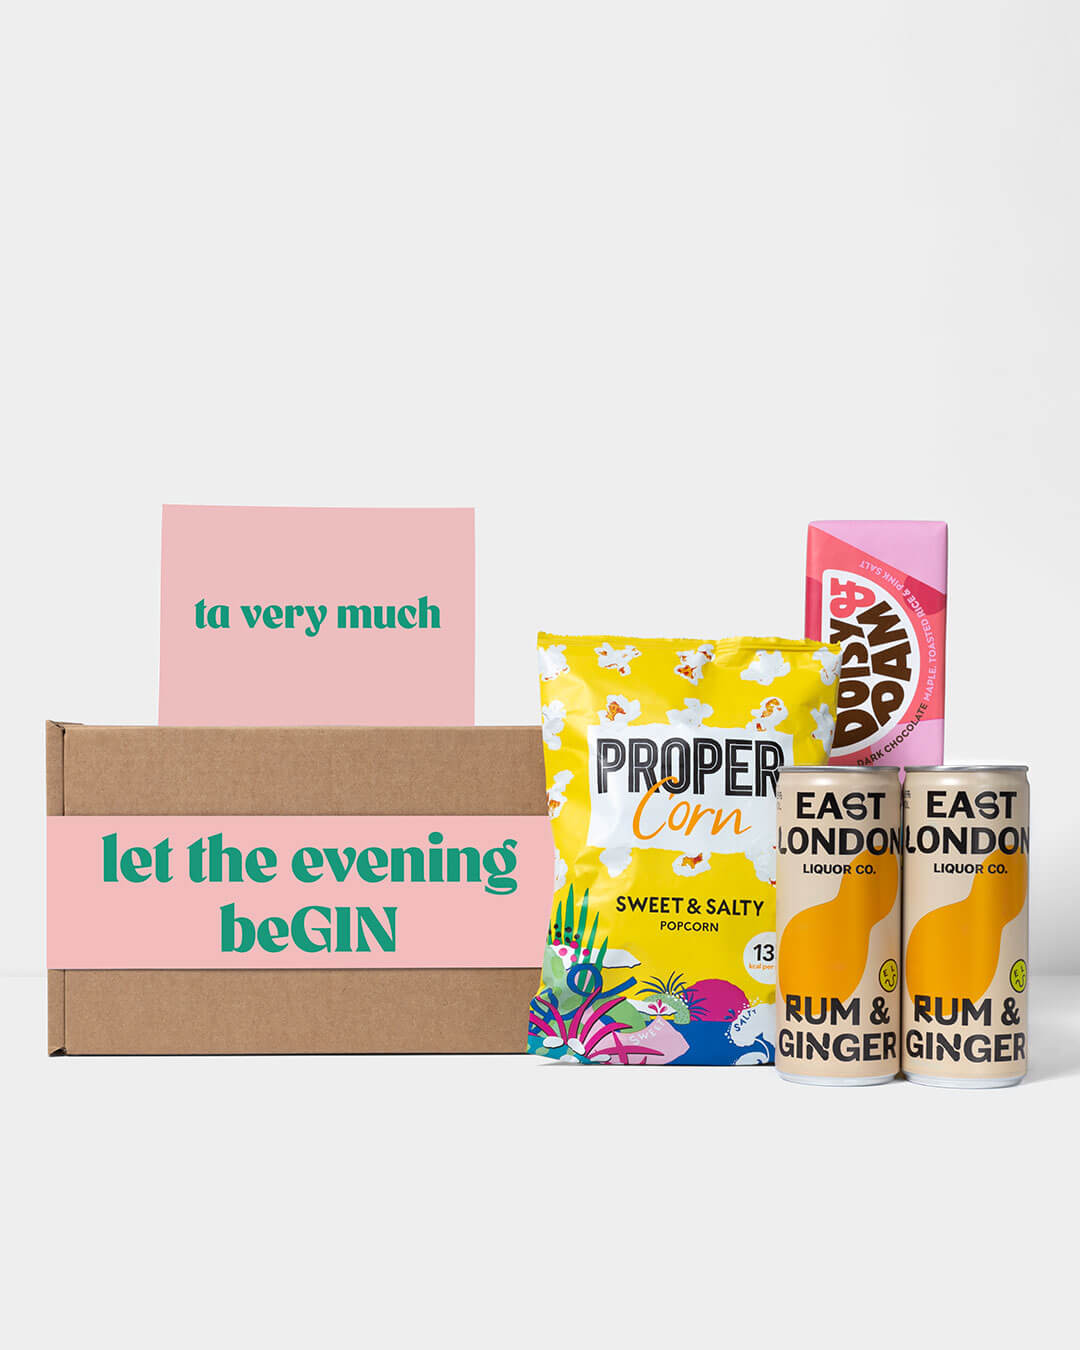 Spirit box including contents: 2 cans of Rum and Ginger from East London Liquor, Propercorn pop corn & Doisy & Dam chocolate